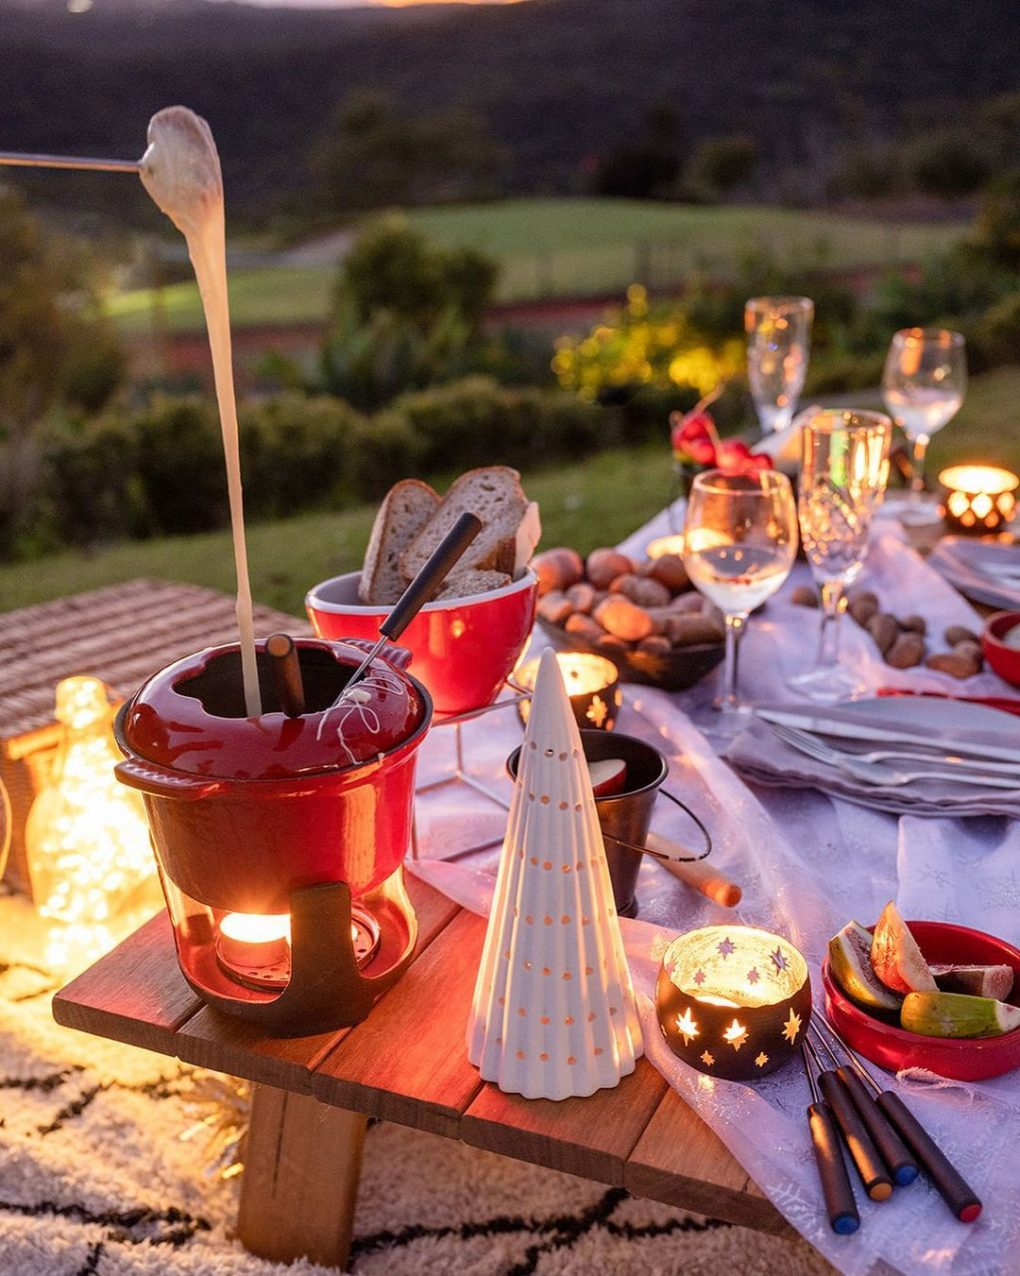 cozy cold weather scenery with fondue